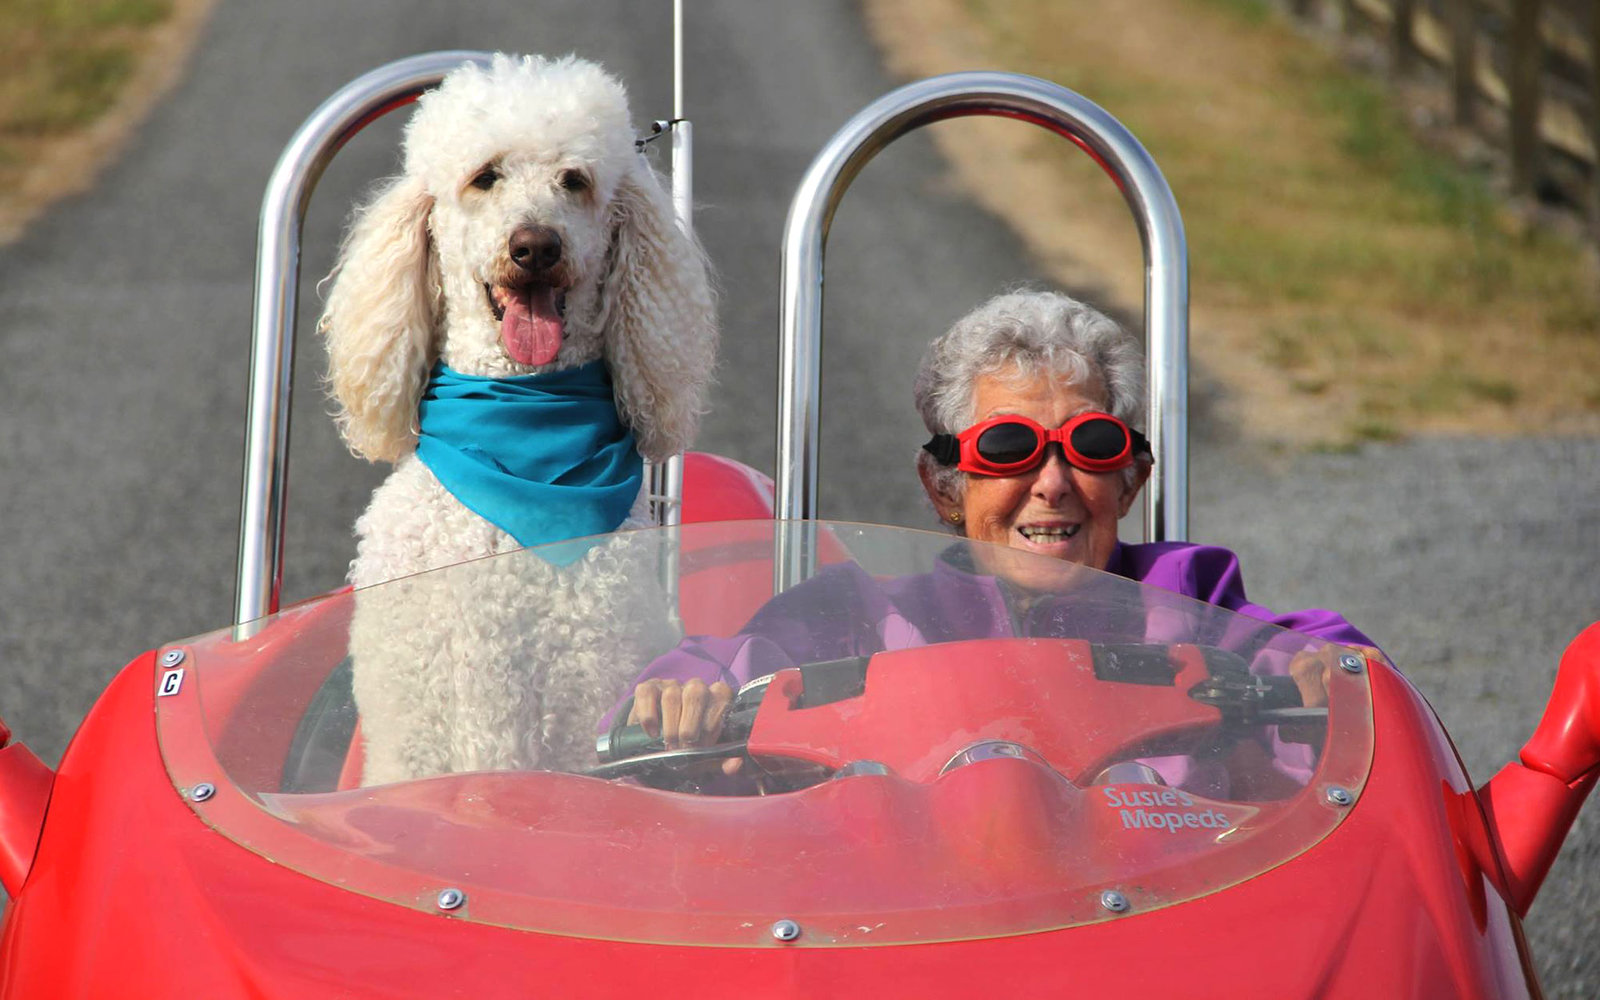 91-Year-Old Woman Who Skipped Cancer Treatment to Go RVing Across the Country Dies After Year-Long Adventure